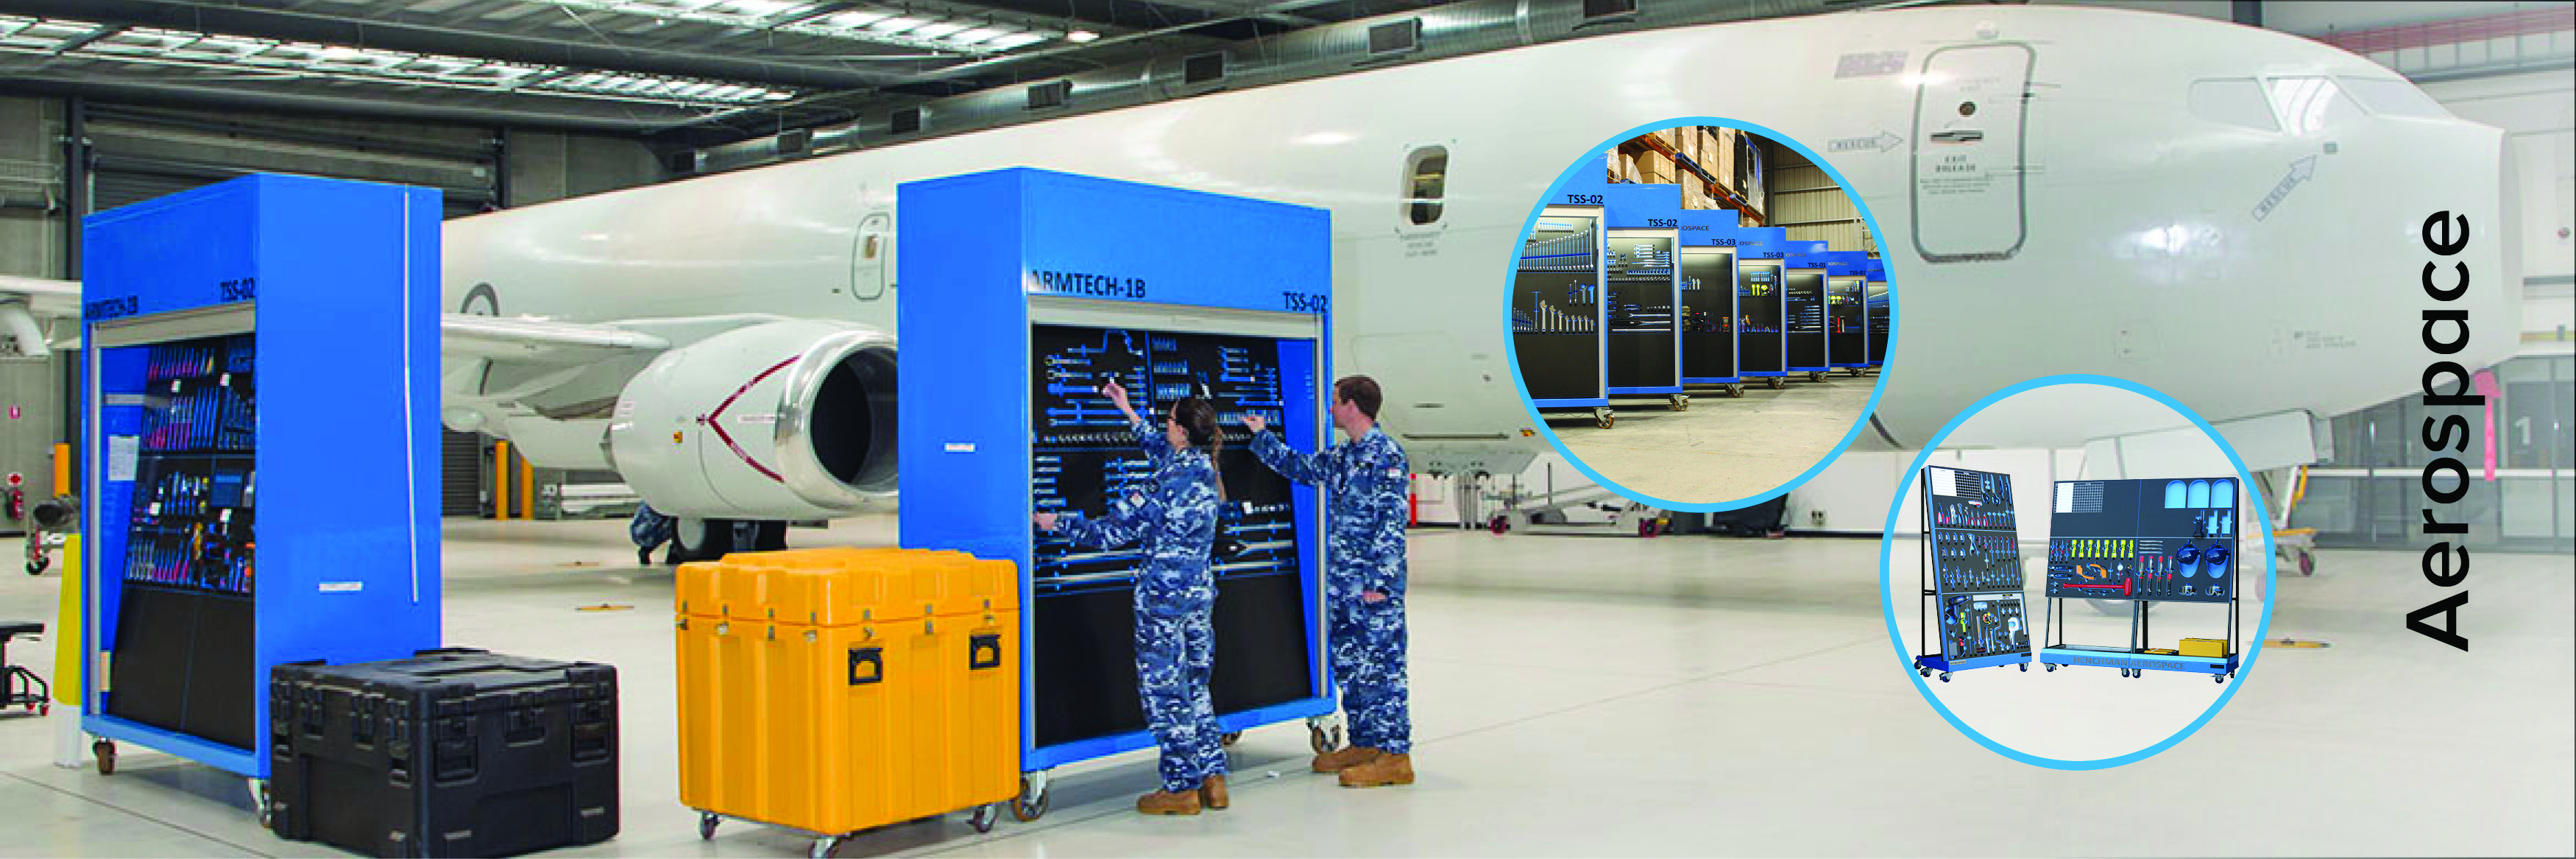 Case Study: Toolkitting for the RAAF